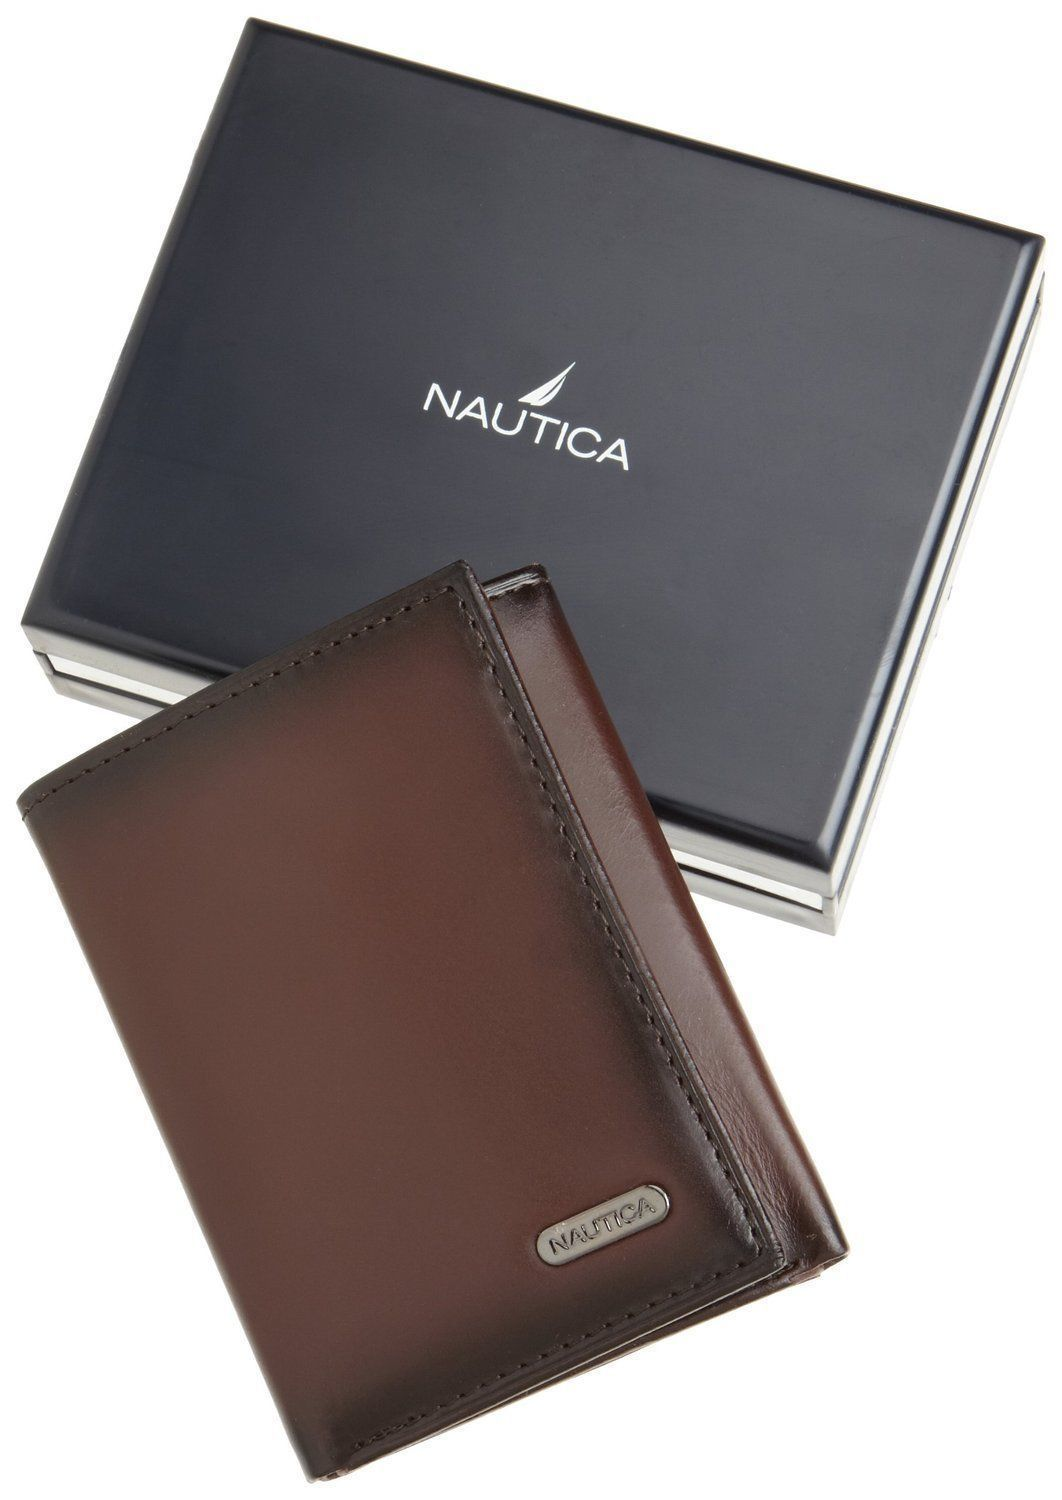 New Nautica Men's Premium Leather Credit Card Id Wallet Trifold Brown 31NU11X017